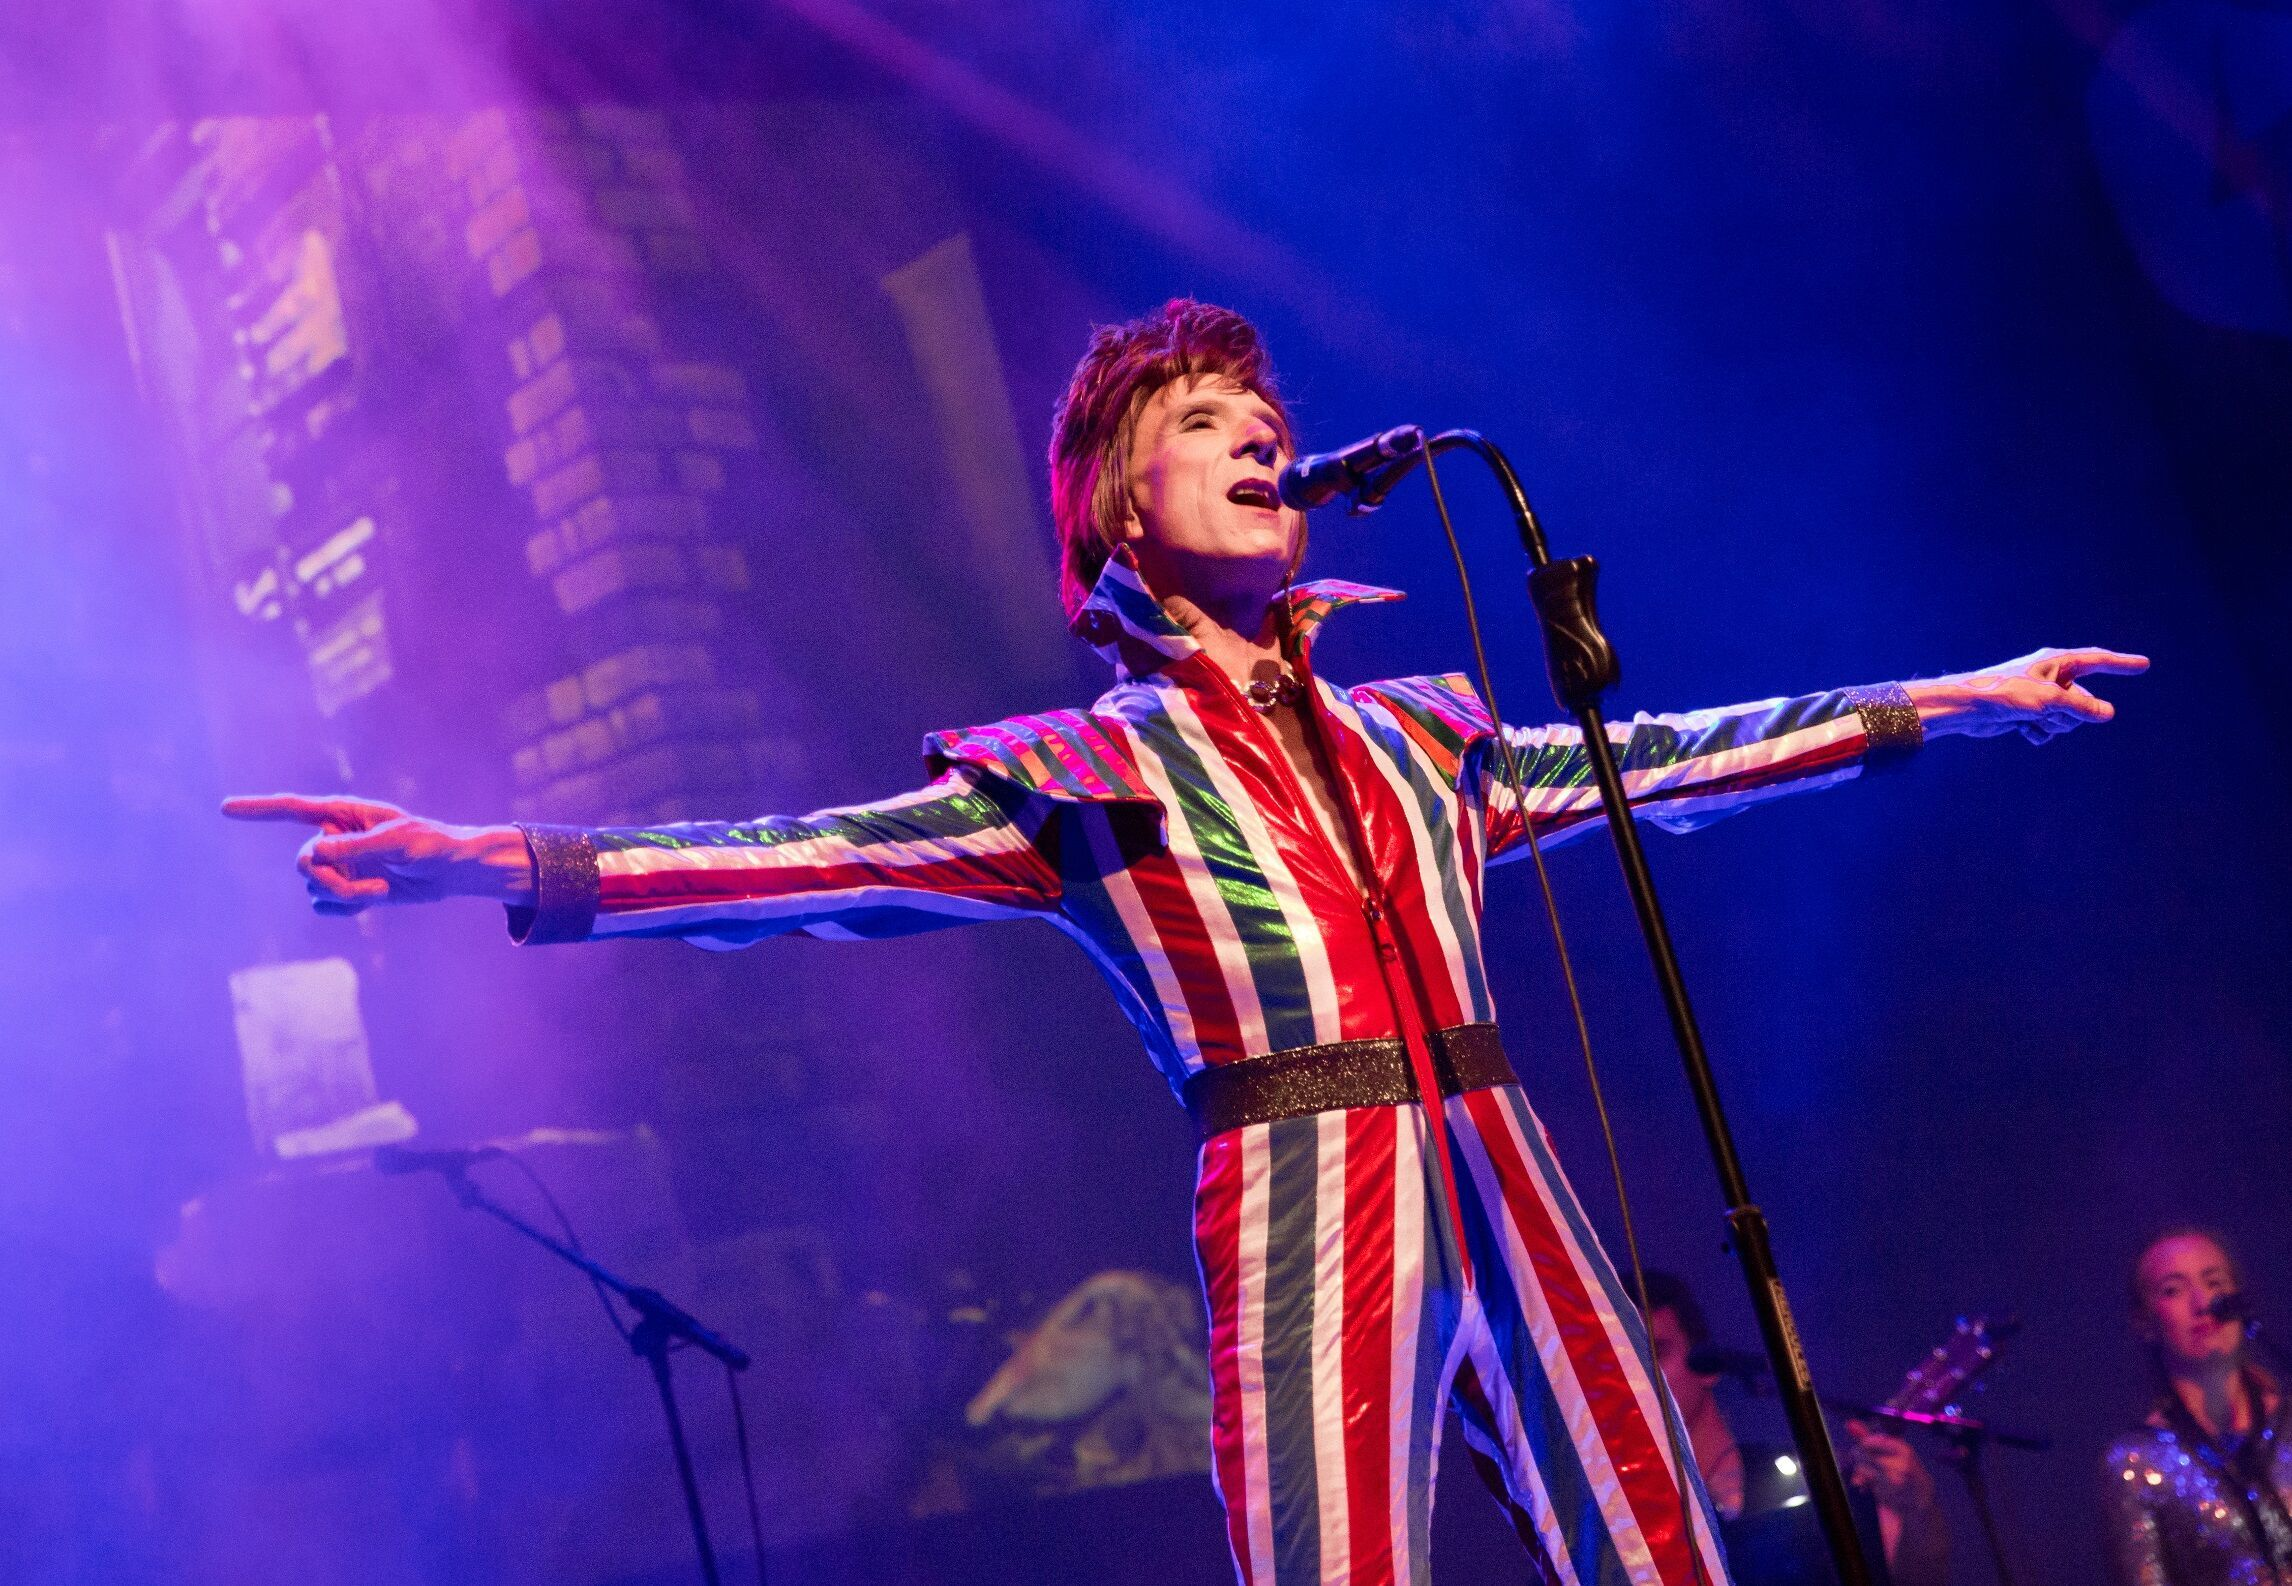 Laurence Knight performs as David Bowie at The King's Theatre this weekend